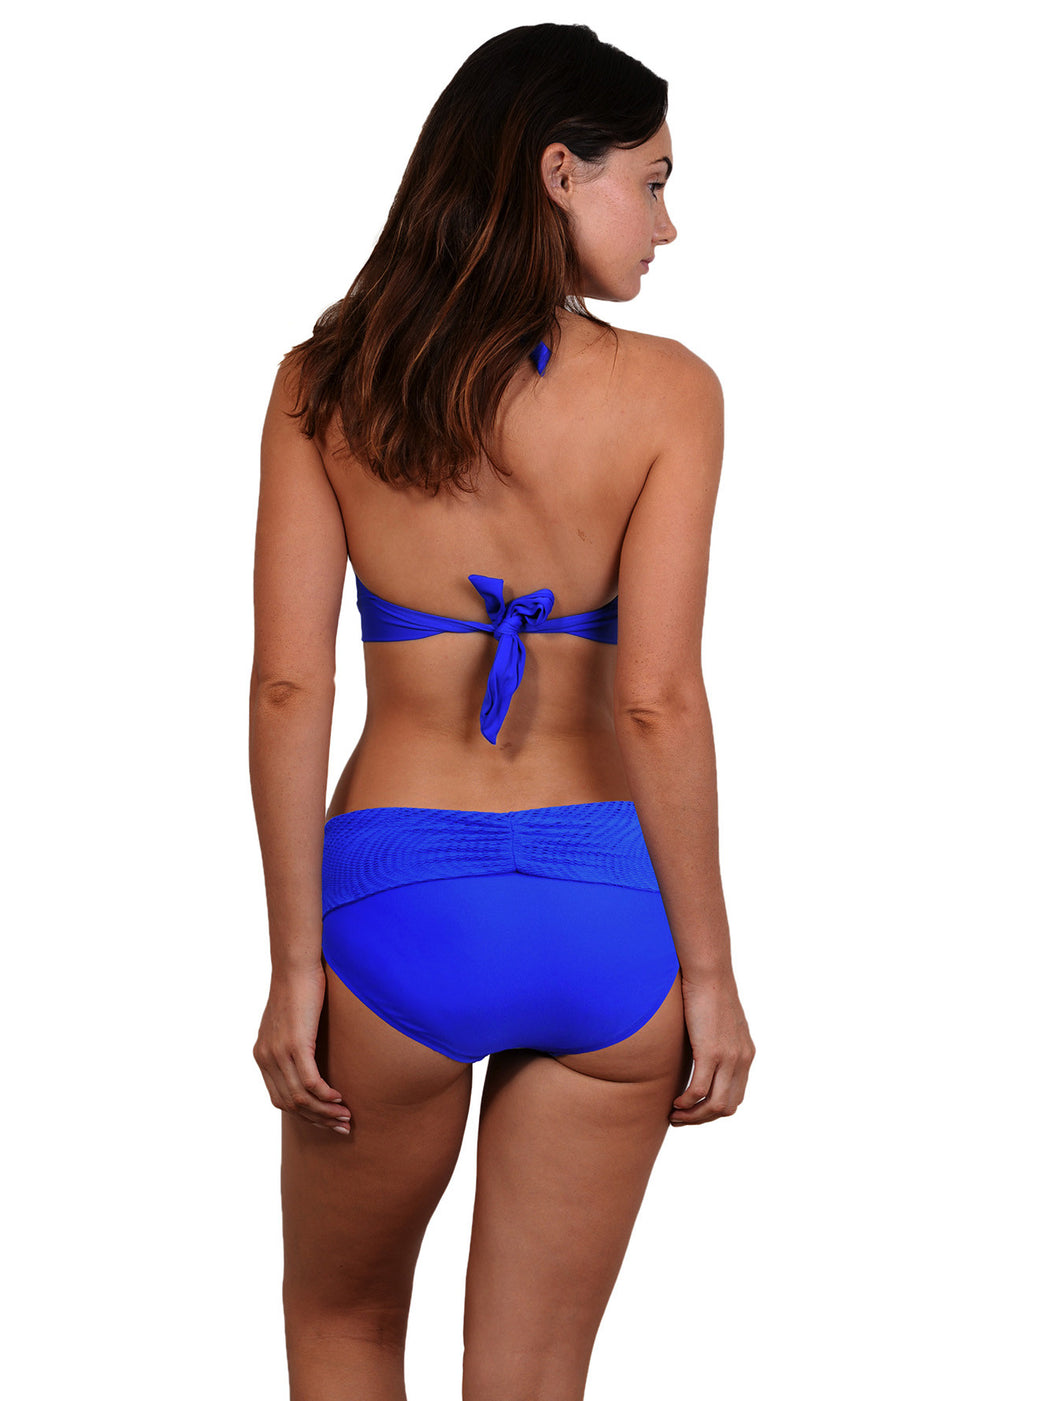 Back view of D-F Cup Halter Top in Lapis colour